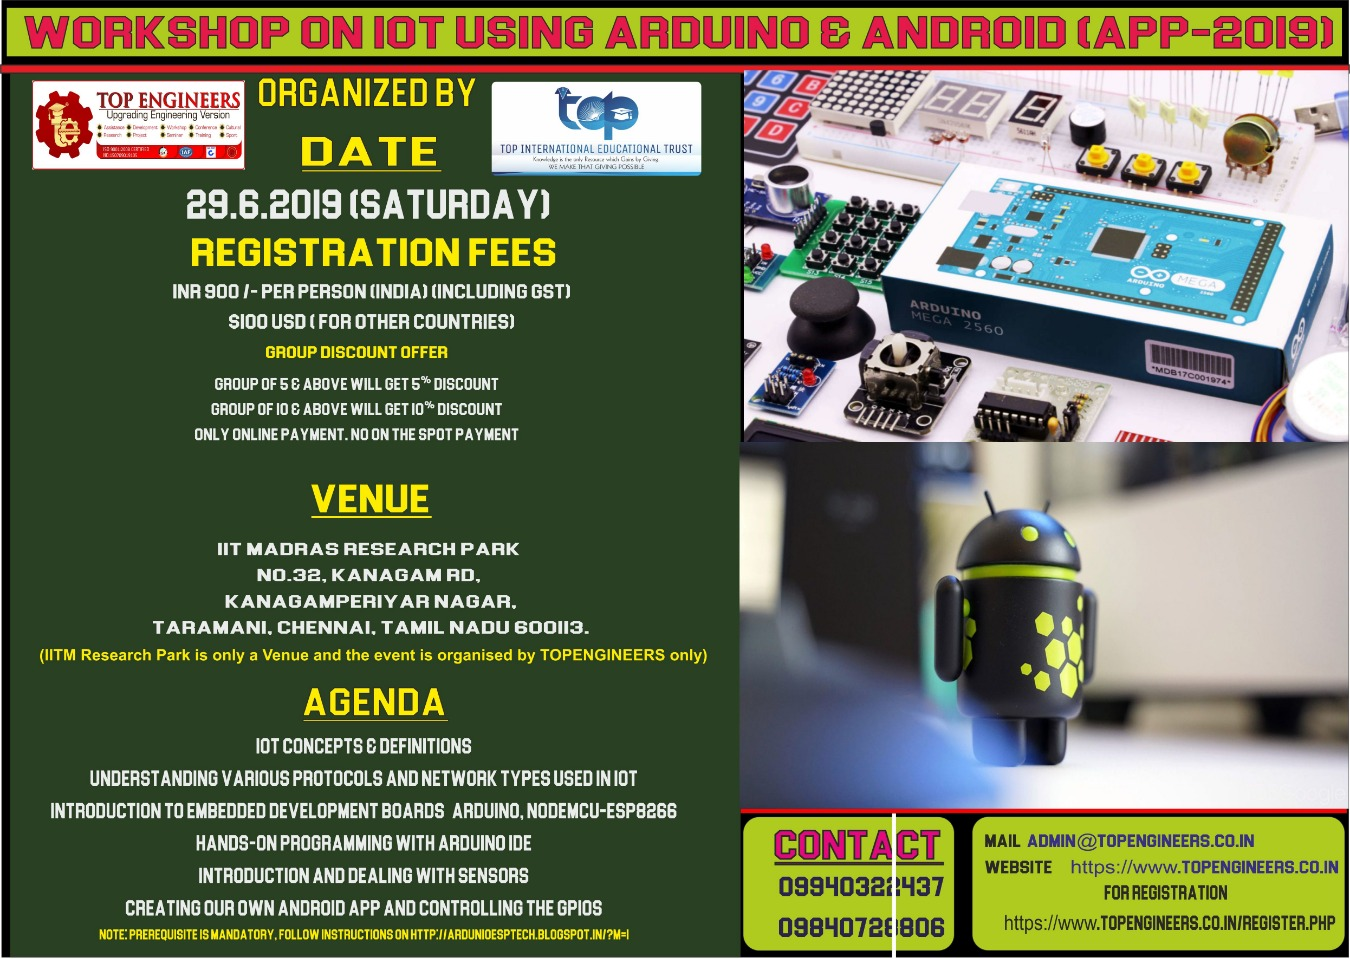 WORKSHOP ON IOT USING ARDUINO & ANDROID (APP-2019) Tickets by TOP  ENGINEERS, 29 Jun, 2019, Chennai Event